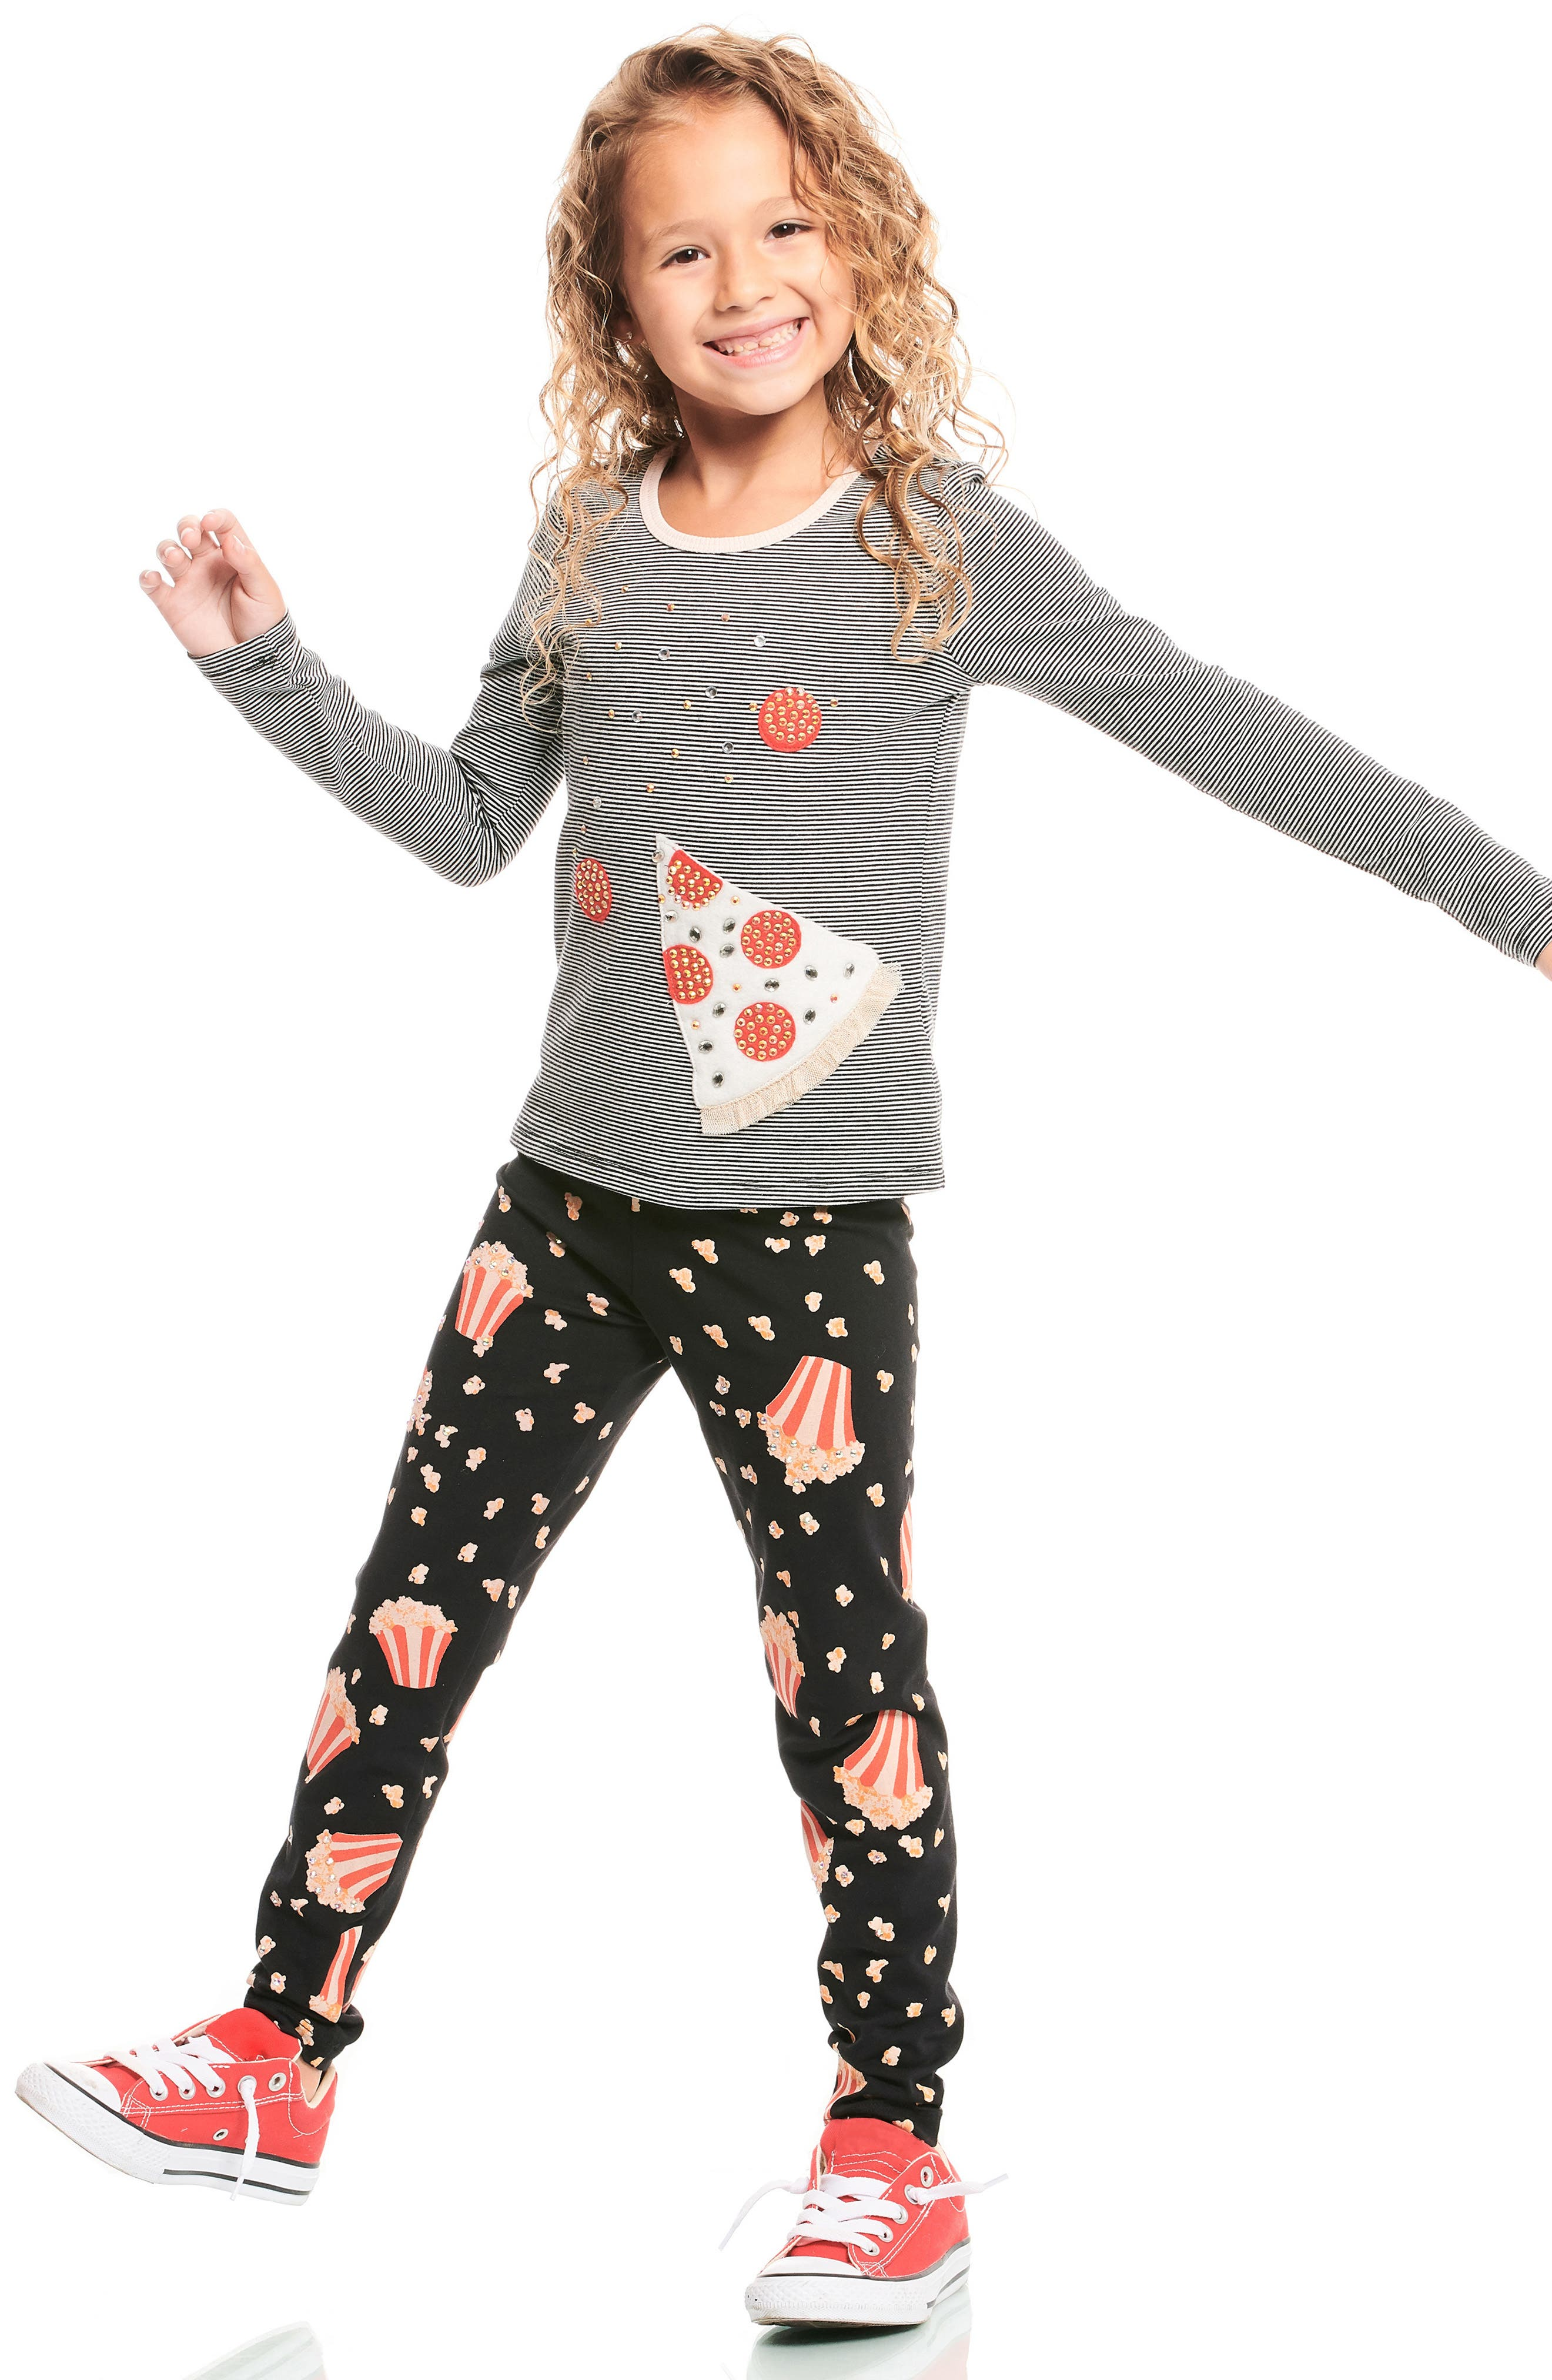 Popcorn Print Leggings,                             Alternate thumbnail 2, color,                             001